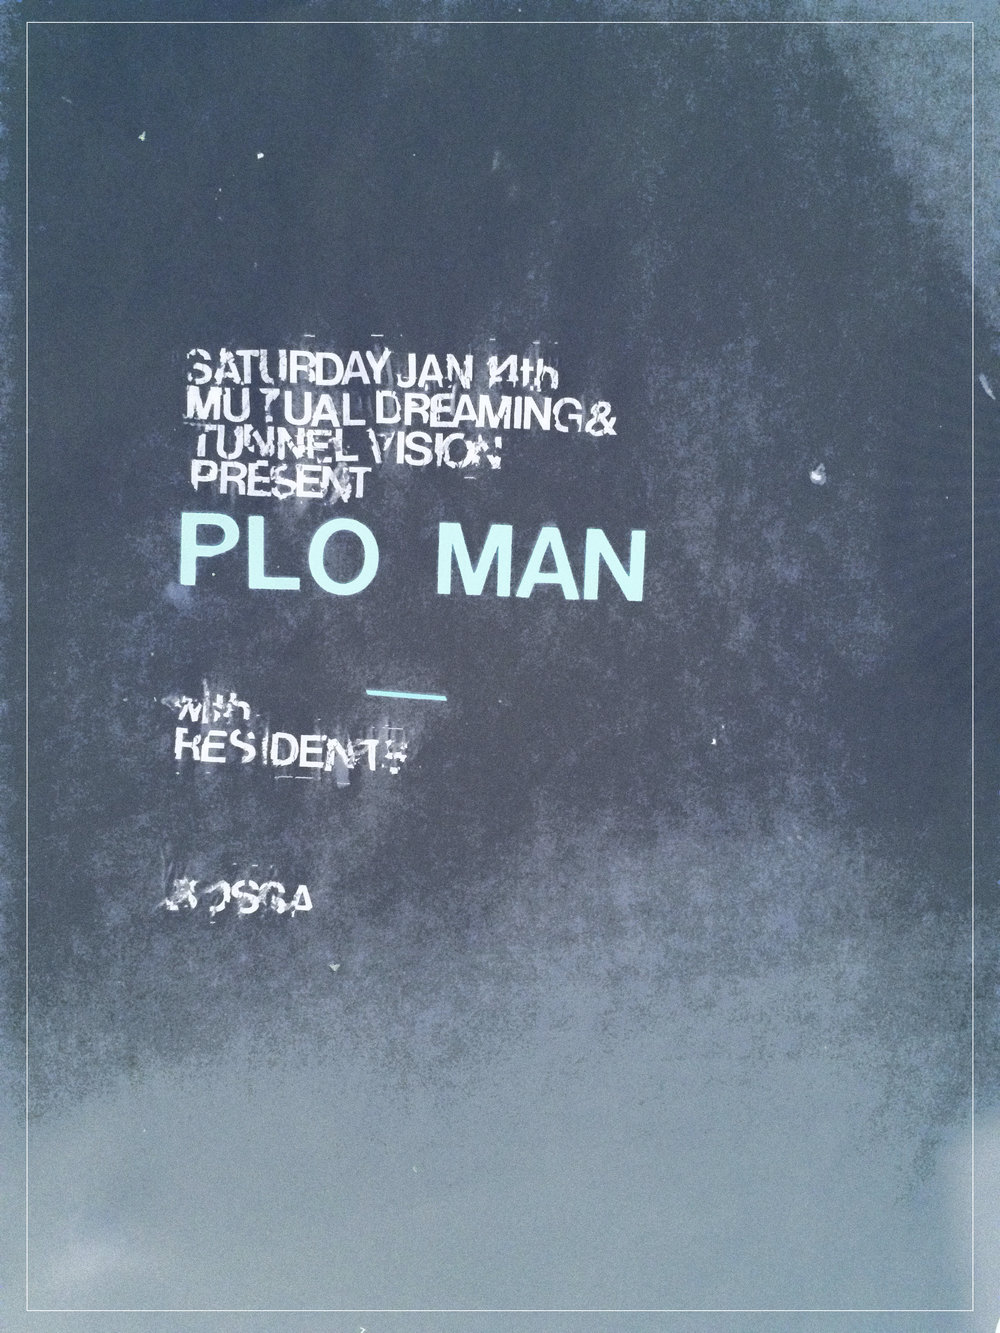 Mutual Dreaming & Tunnel Vision present PLO MAN (5 hour set), Residents  January 2017